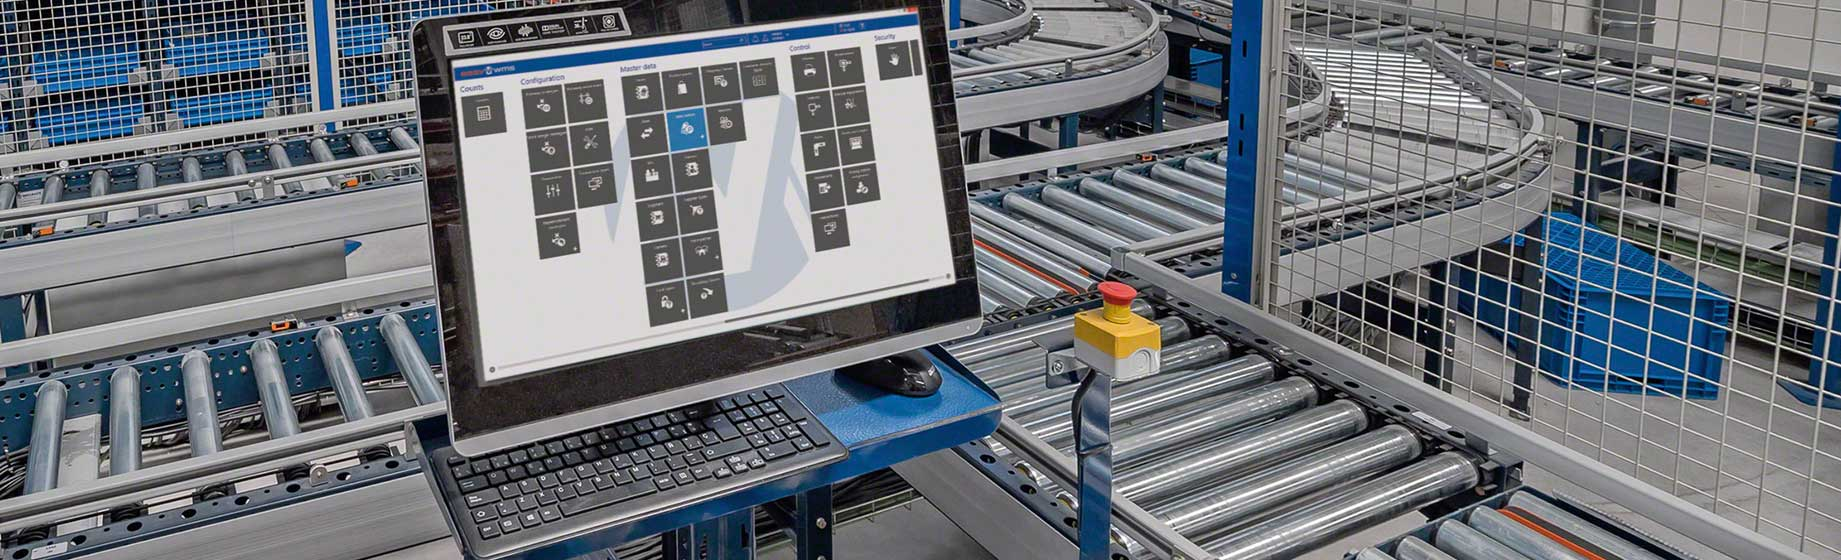 Warehouse software